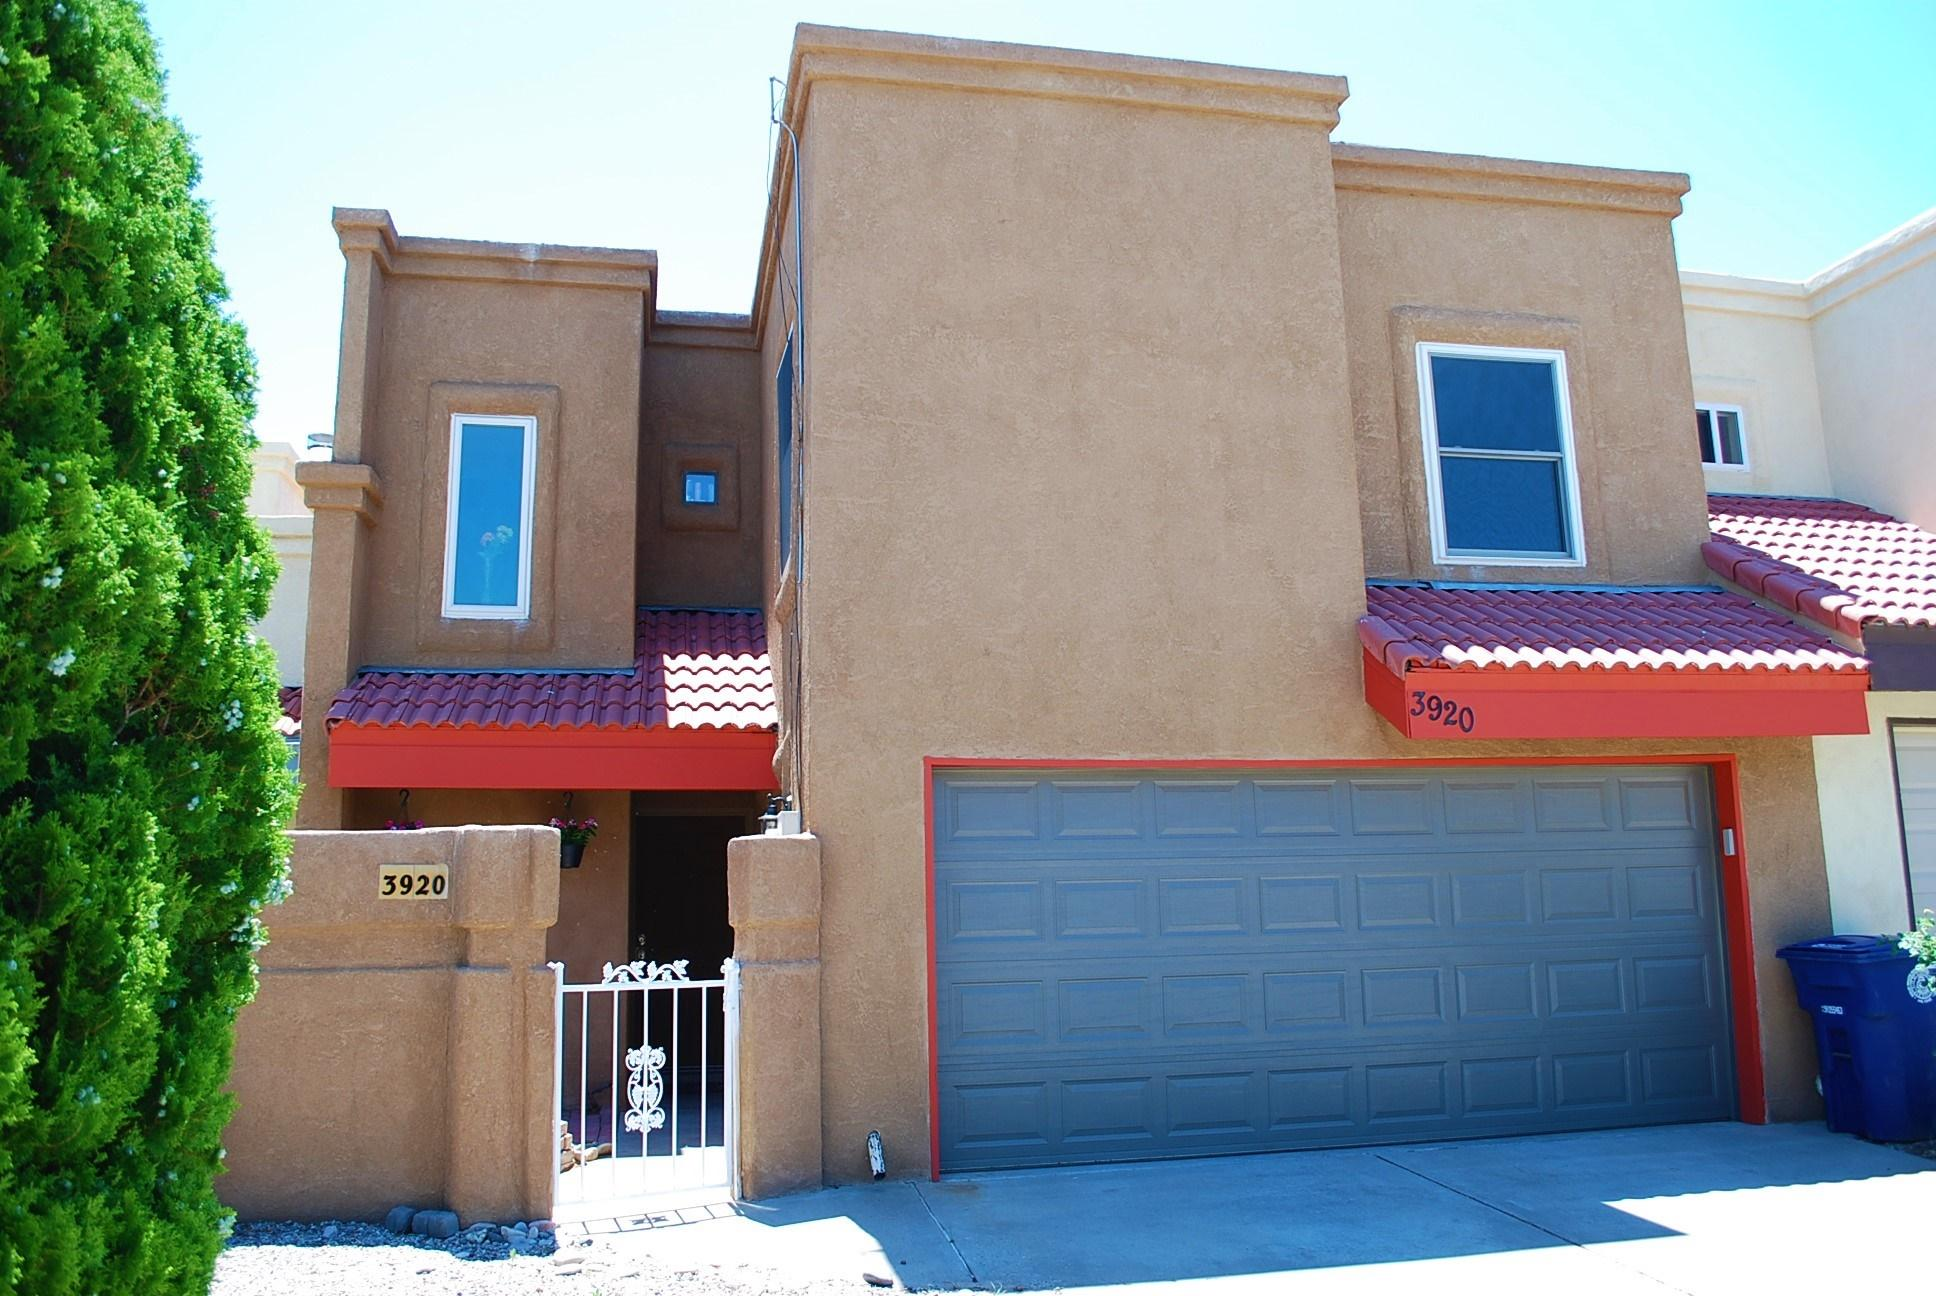 3920 NW Ladera Drive, Northwest Albuquerque and Northwest Heights, New Mexico